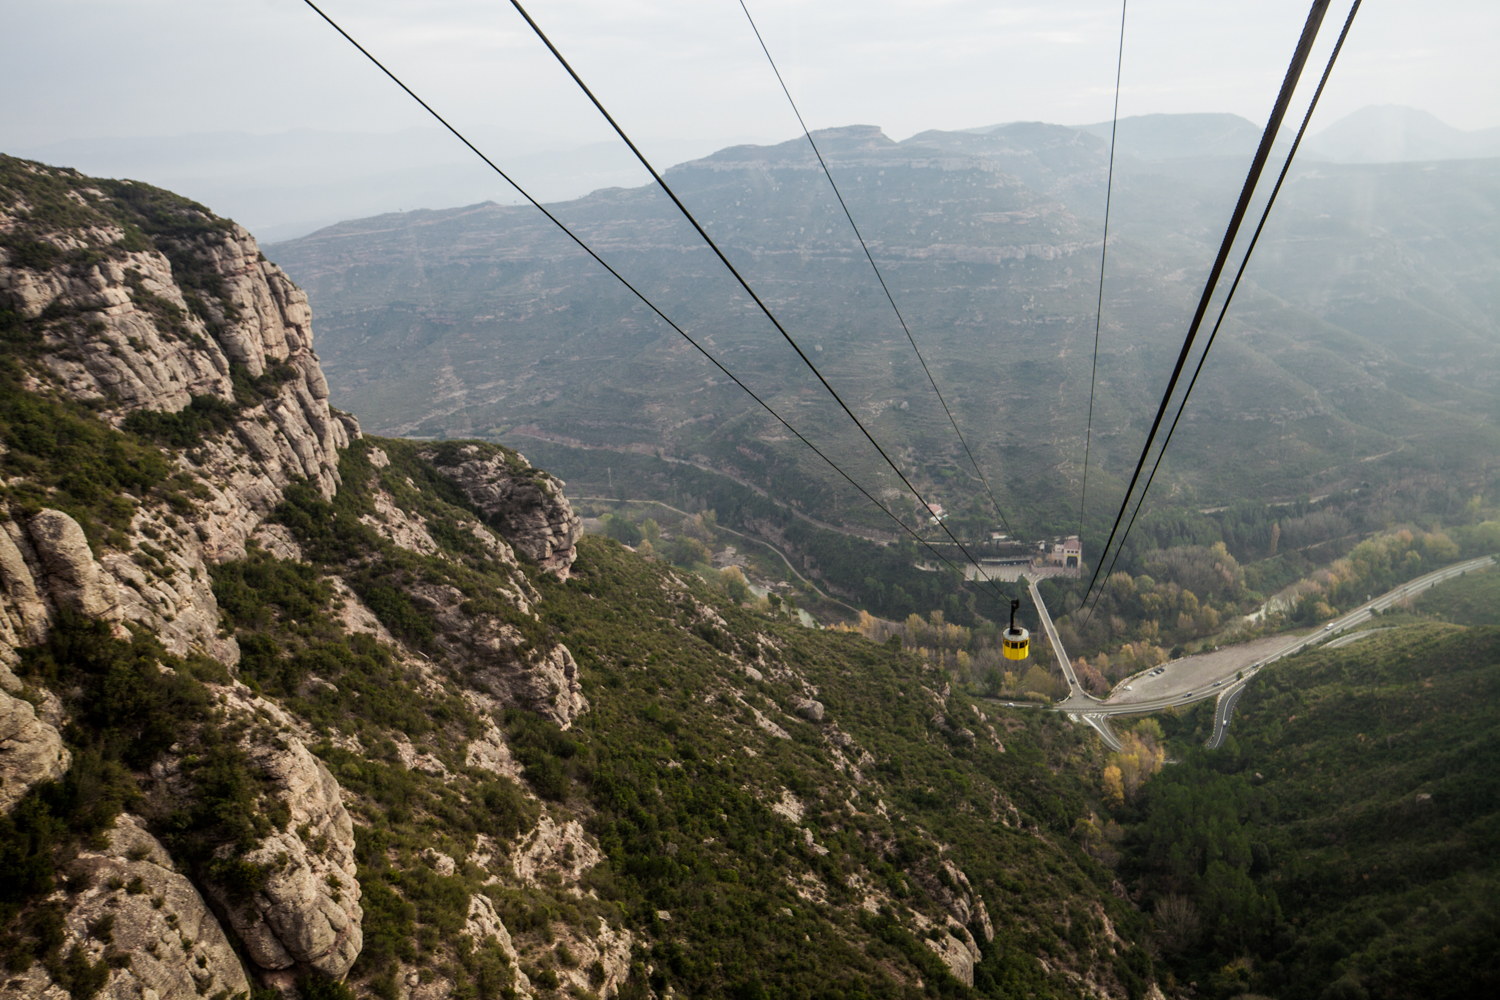 The terrifying cable car ride up to the Montserrat Abbey